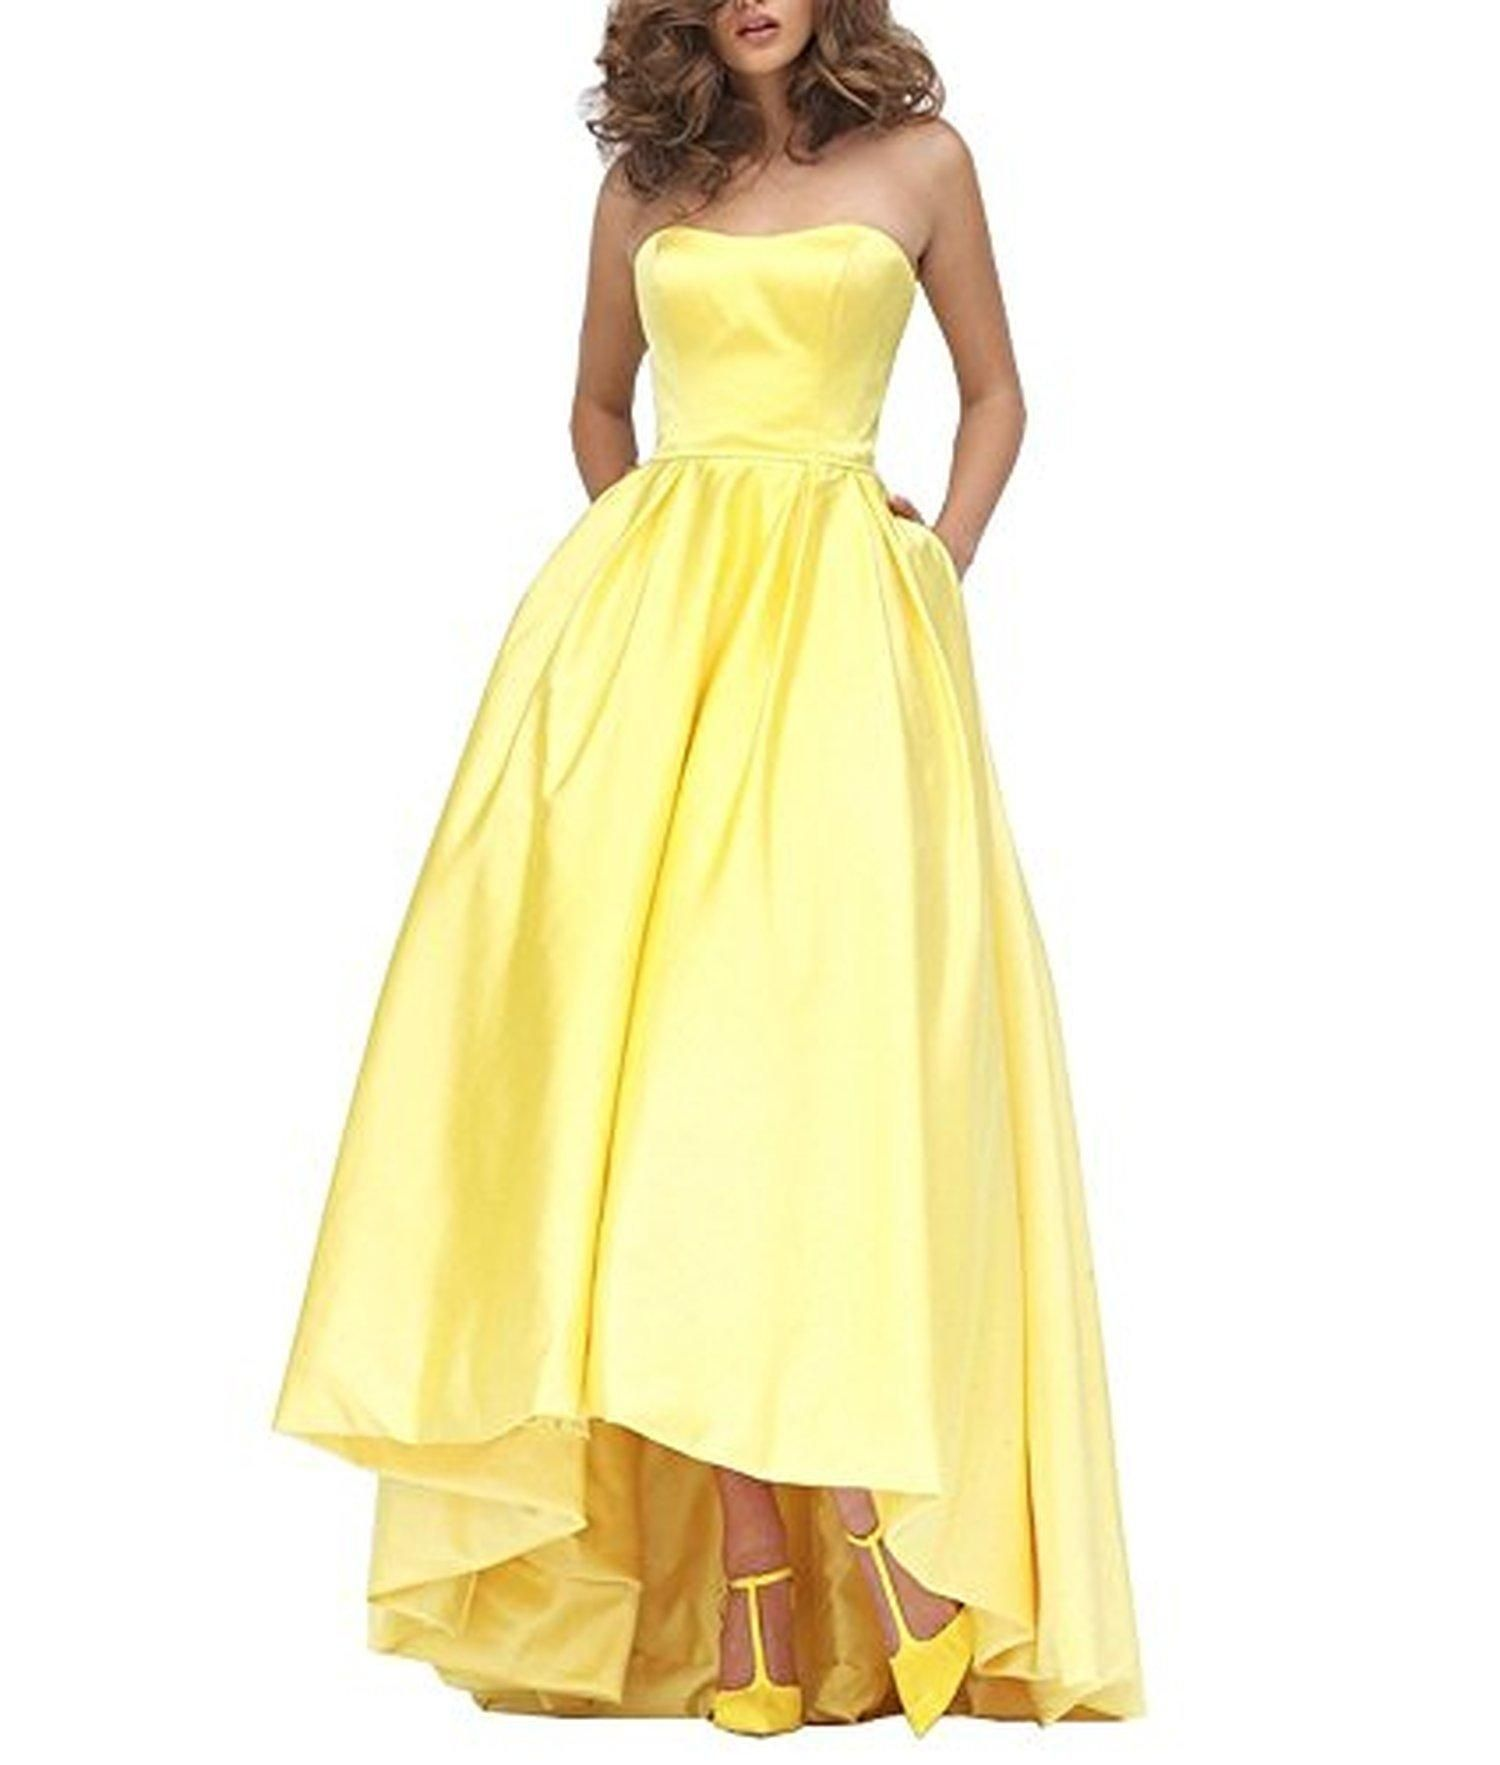 Ezotion Women S Sweeheart Simply Short Front Long Back A Line Lace Prom Dress 26w Yellow Prom Dresses Yellow Prom Dresses Sherri Hill Prom Dresses [ 1765 x 1500 Pixel ]